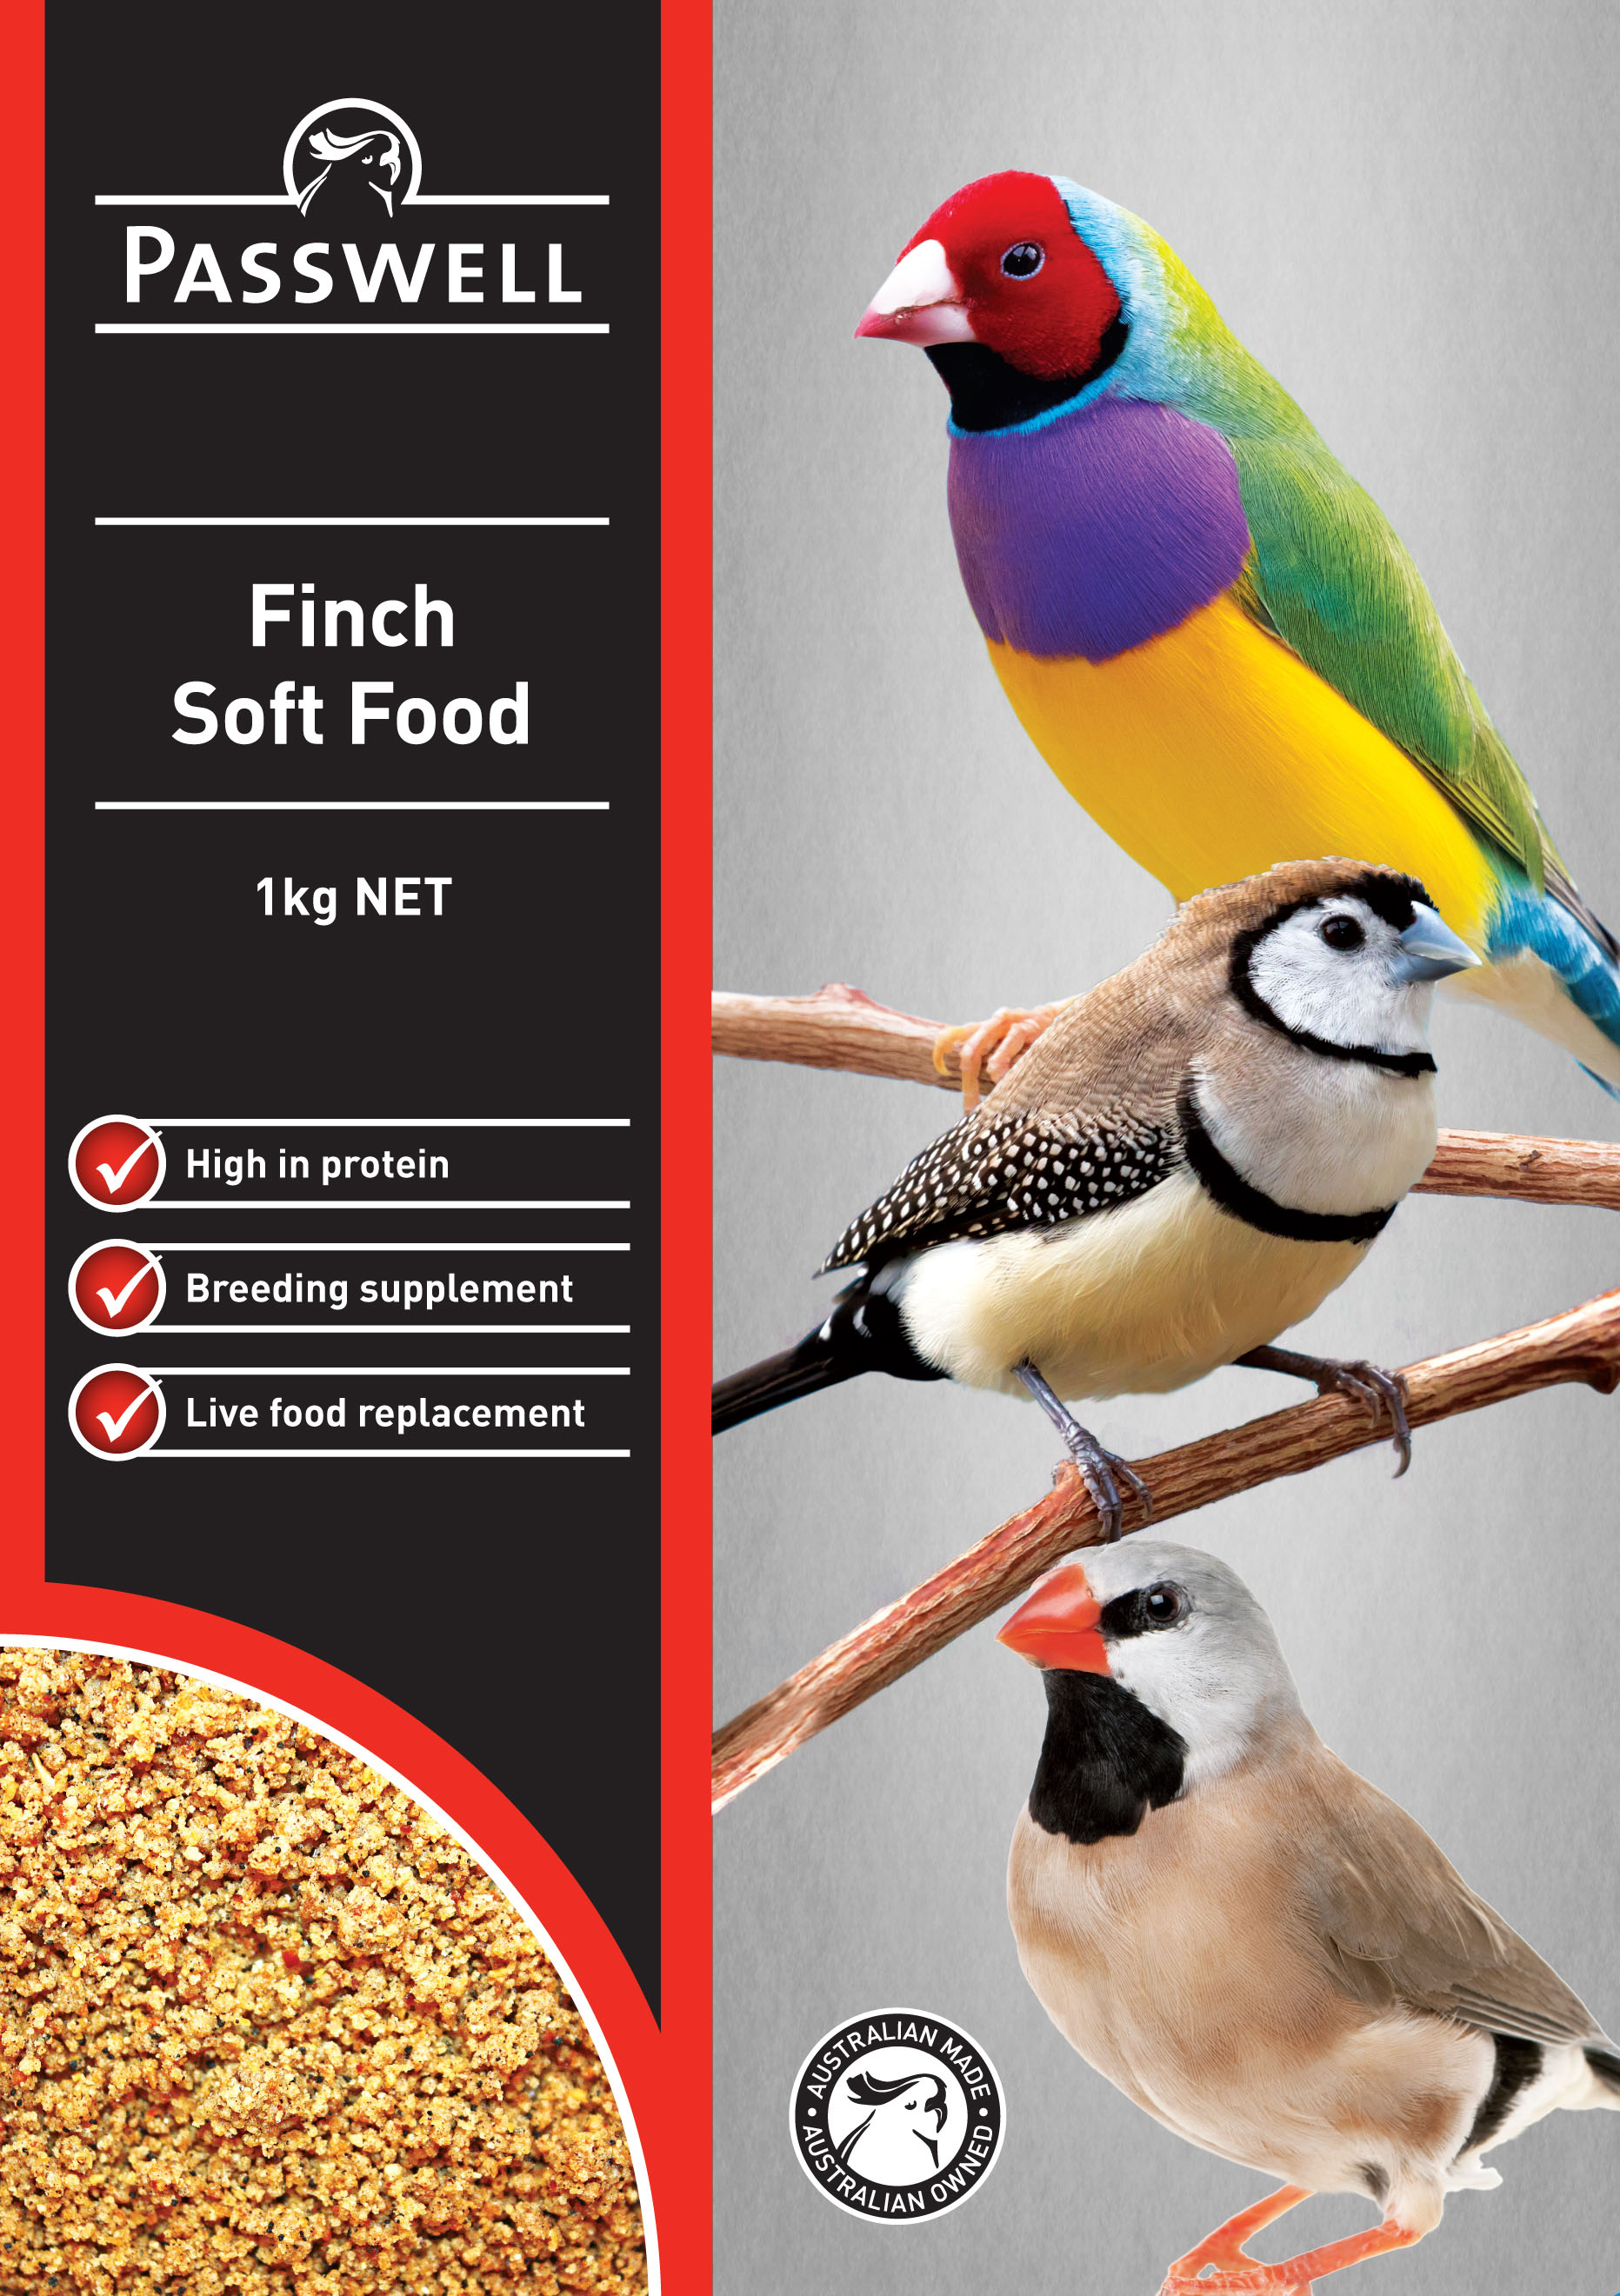 Finch Soft Food image